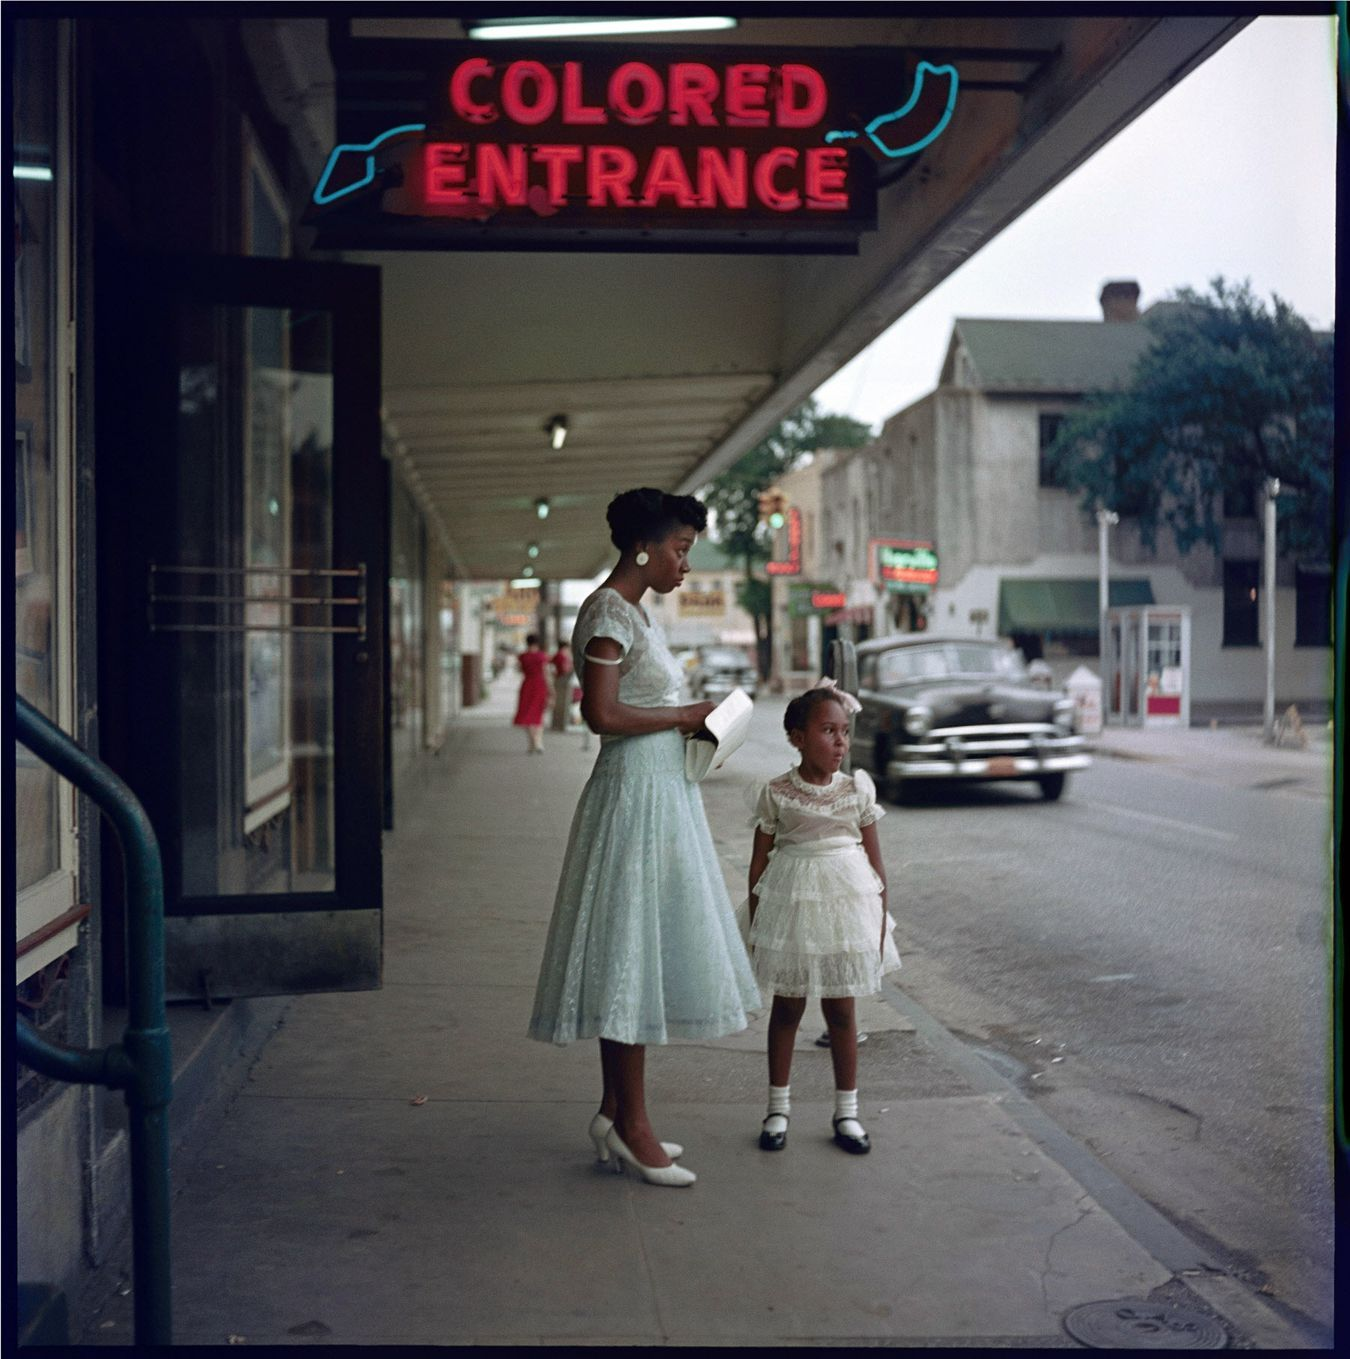 The photographs are in color — but the injustice is as clear as black and white. On assignment for Life magazine in 1956, photographer Gordon Parks focused on an extended African-American family in...